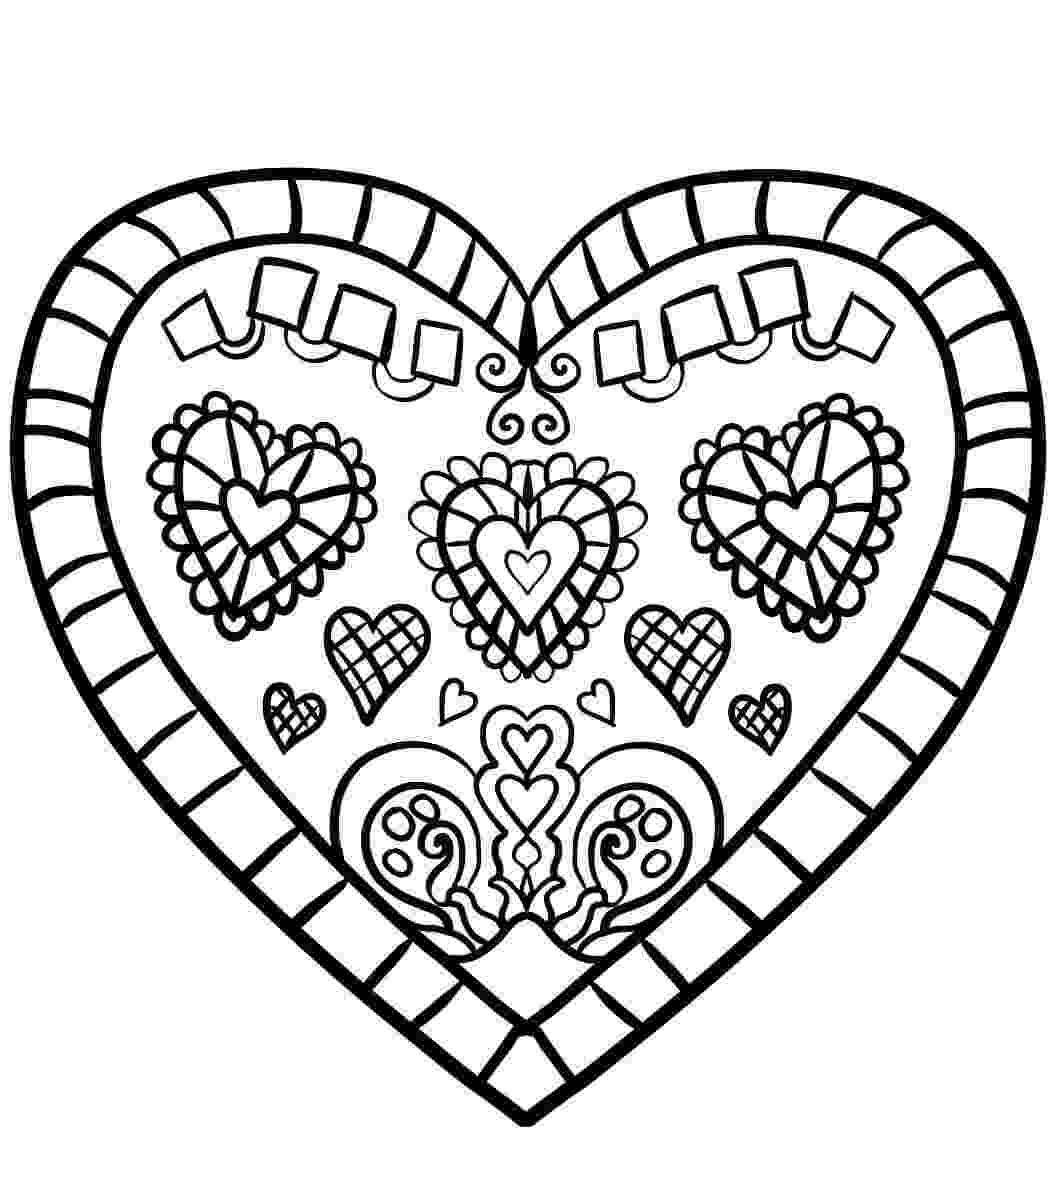 coloring pages for hearts free printable heart coloring pages for kids hearts coloring for pages